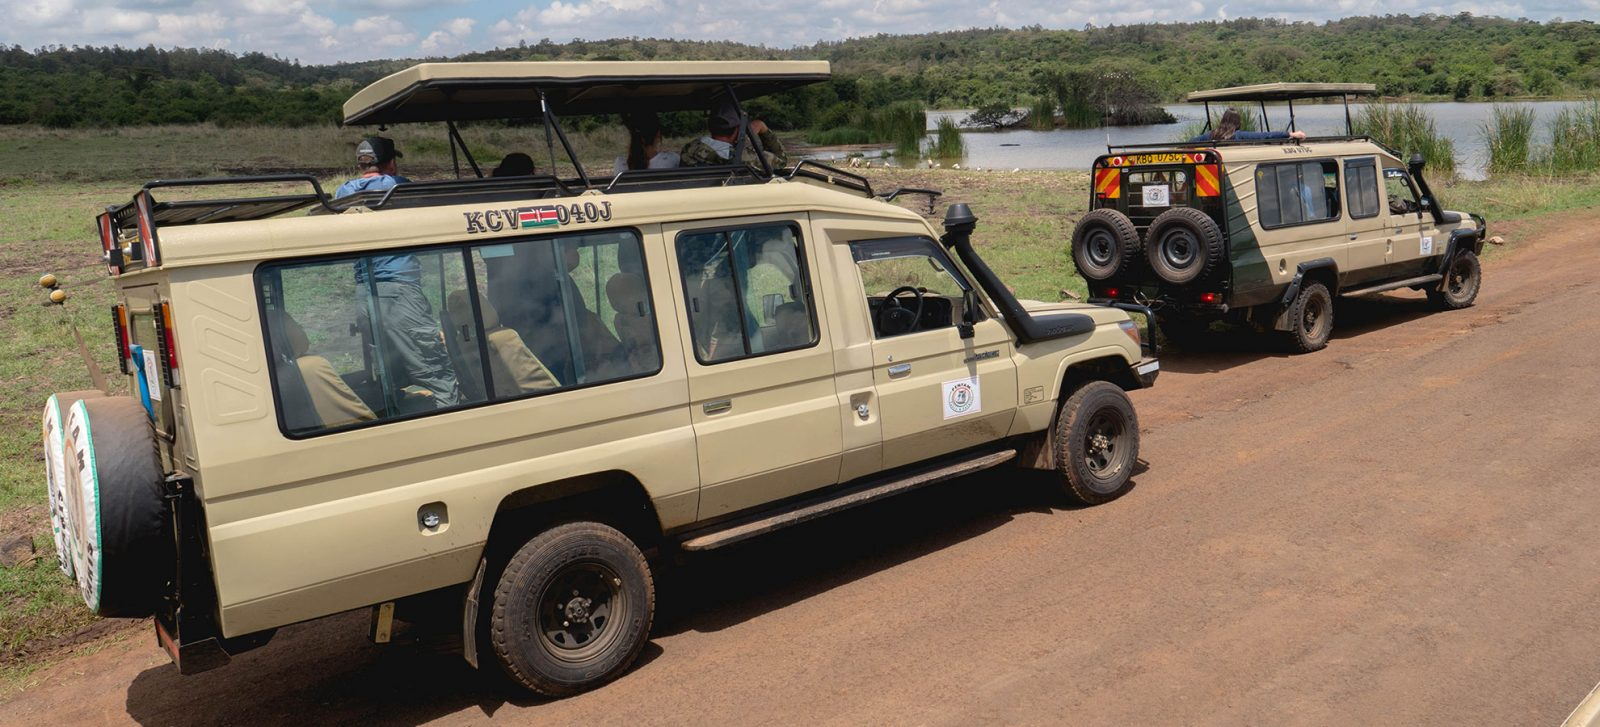 Penfam Tours and Safaris